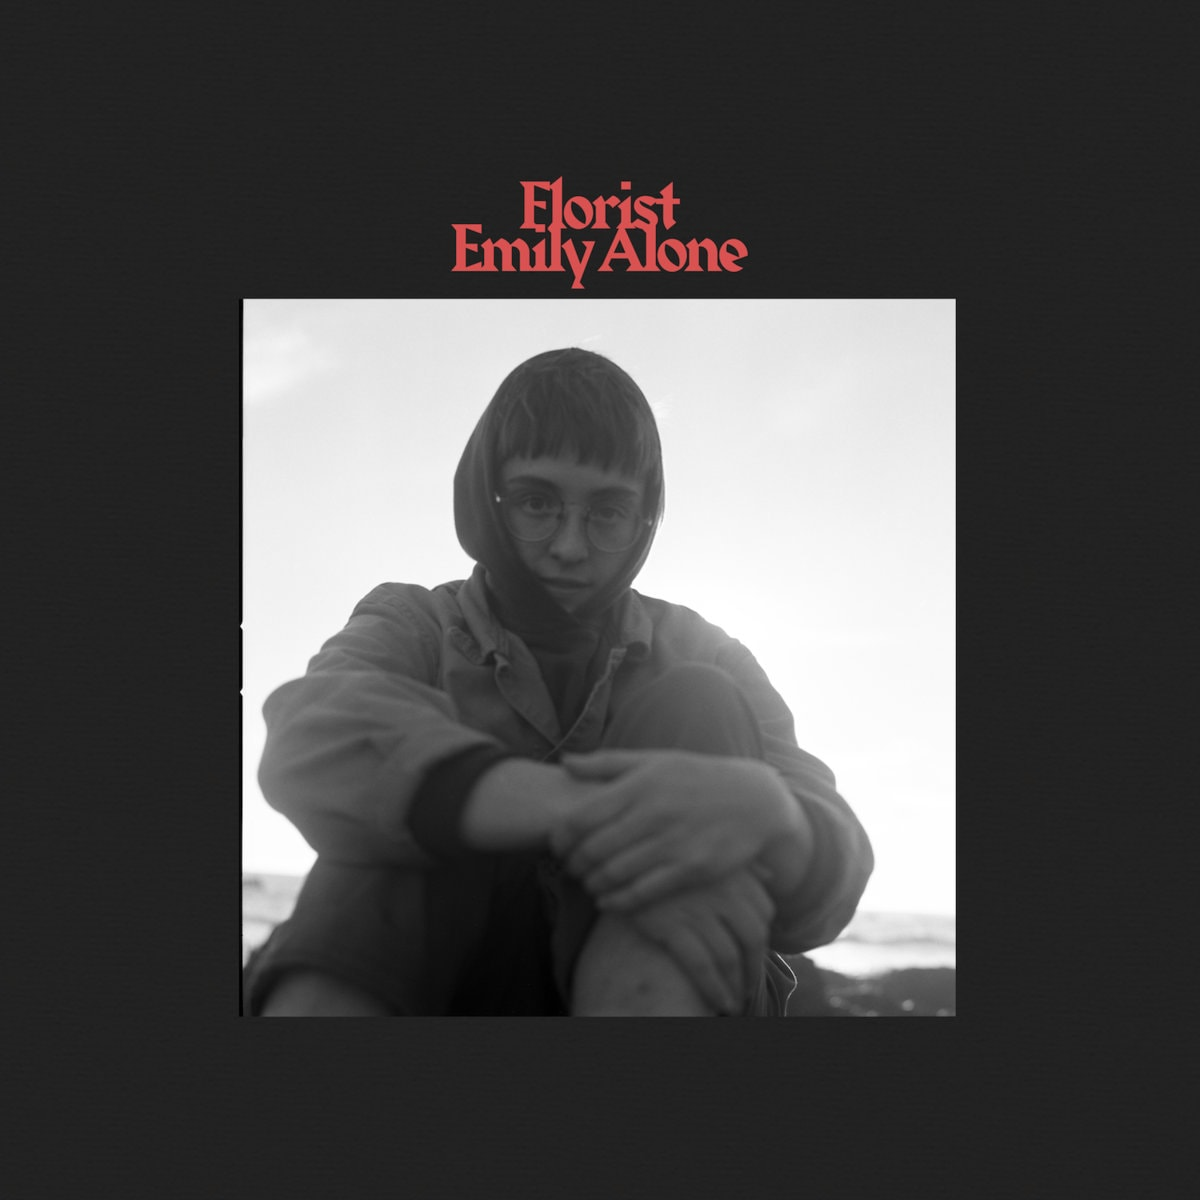 Album cover of Emily Alone by Florist. Black & white photo of Emily Sprague inside thick black border with red text above.